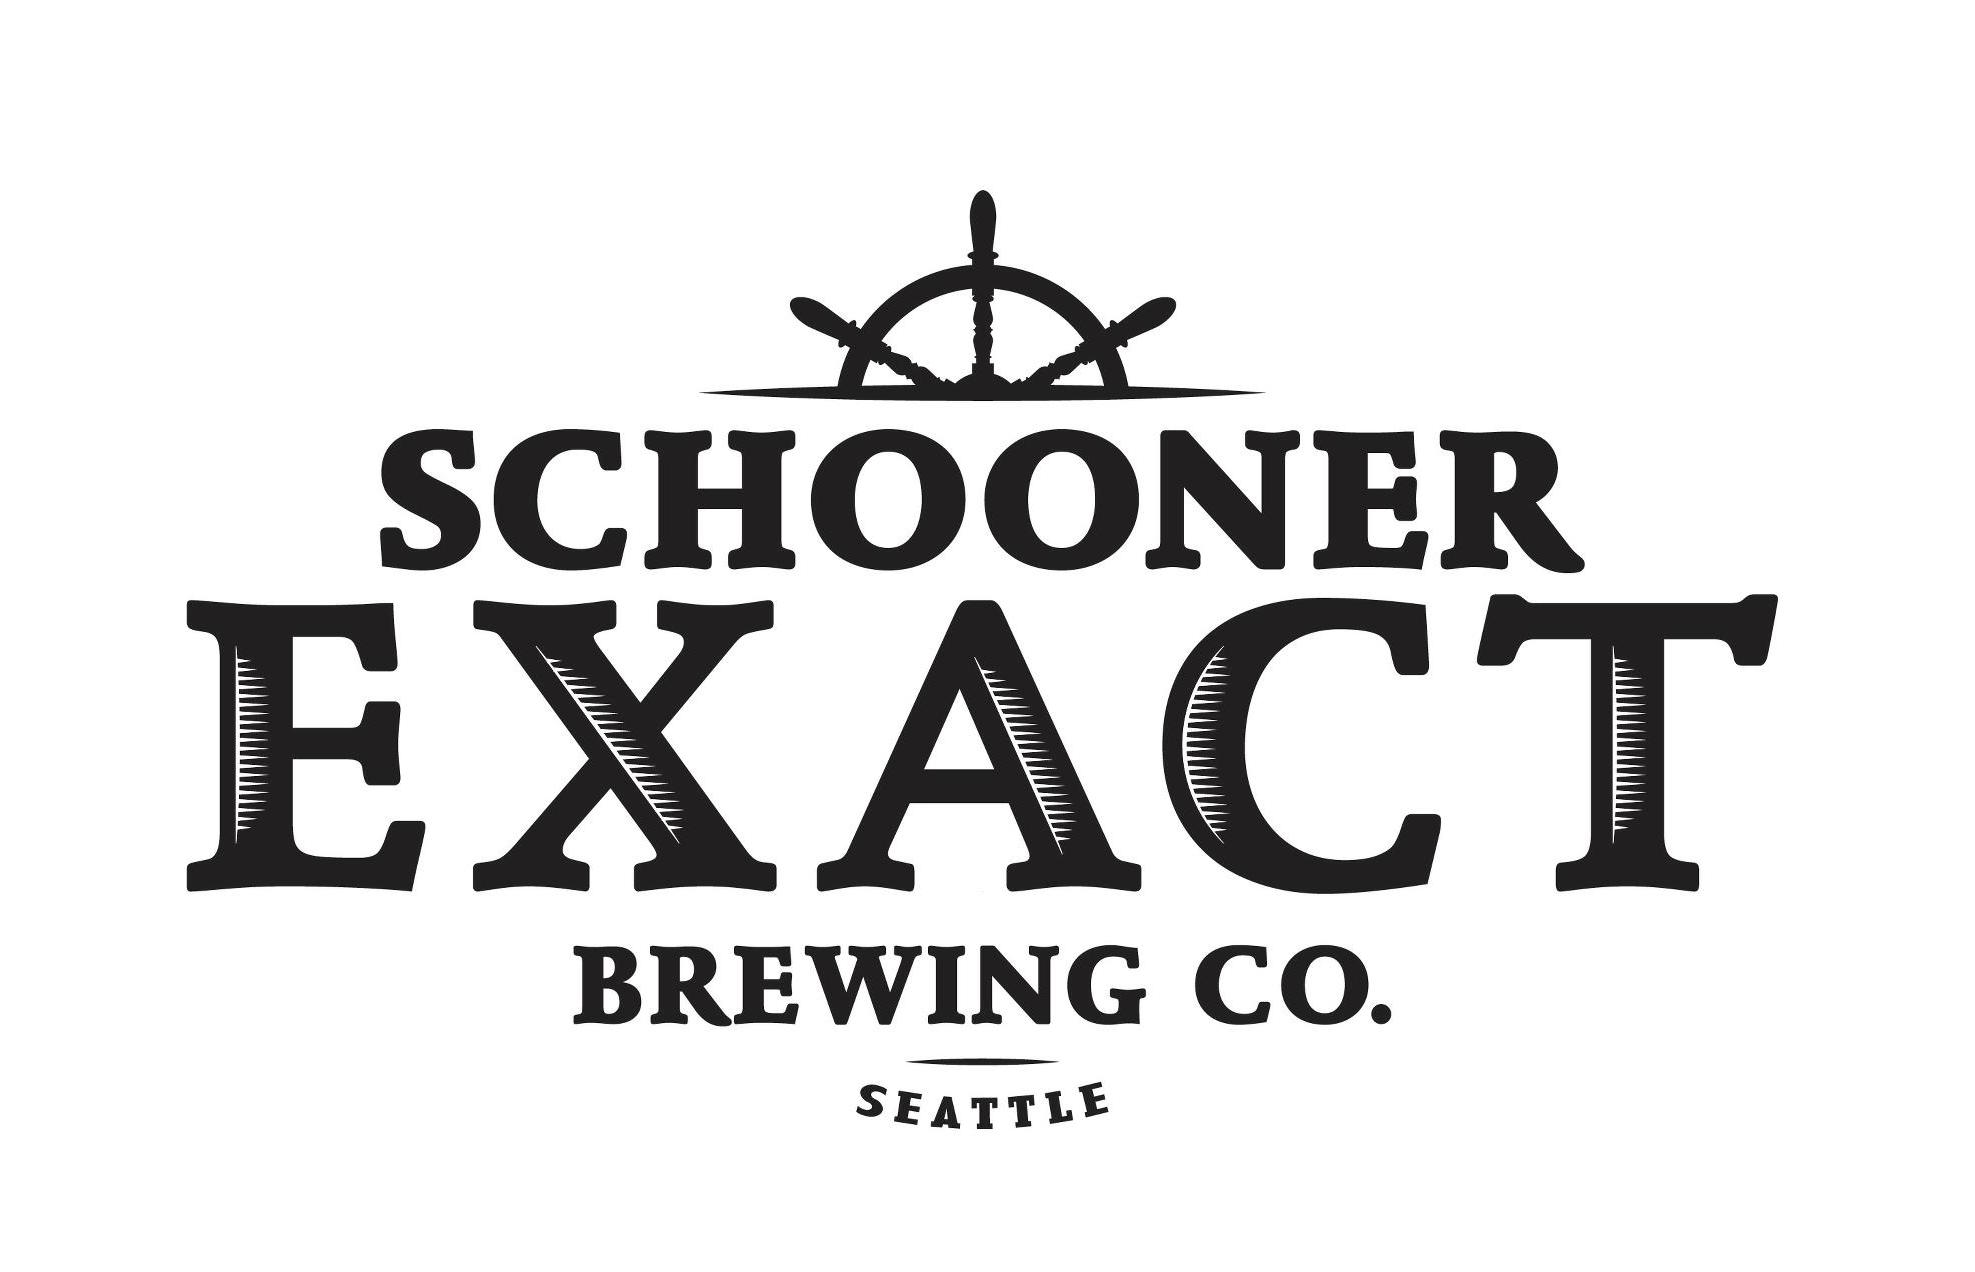 Schooner Exact Brewing